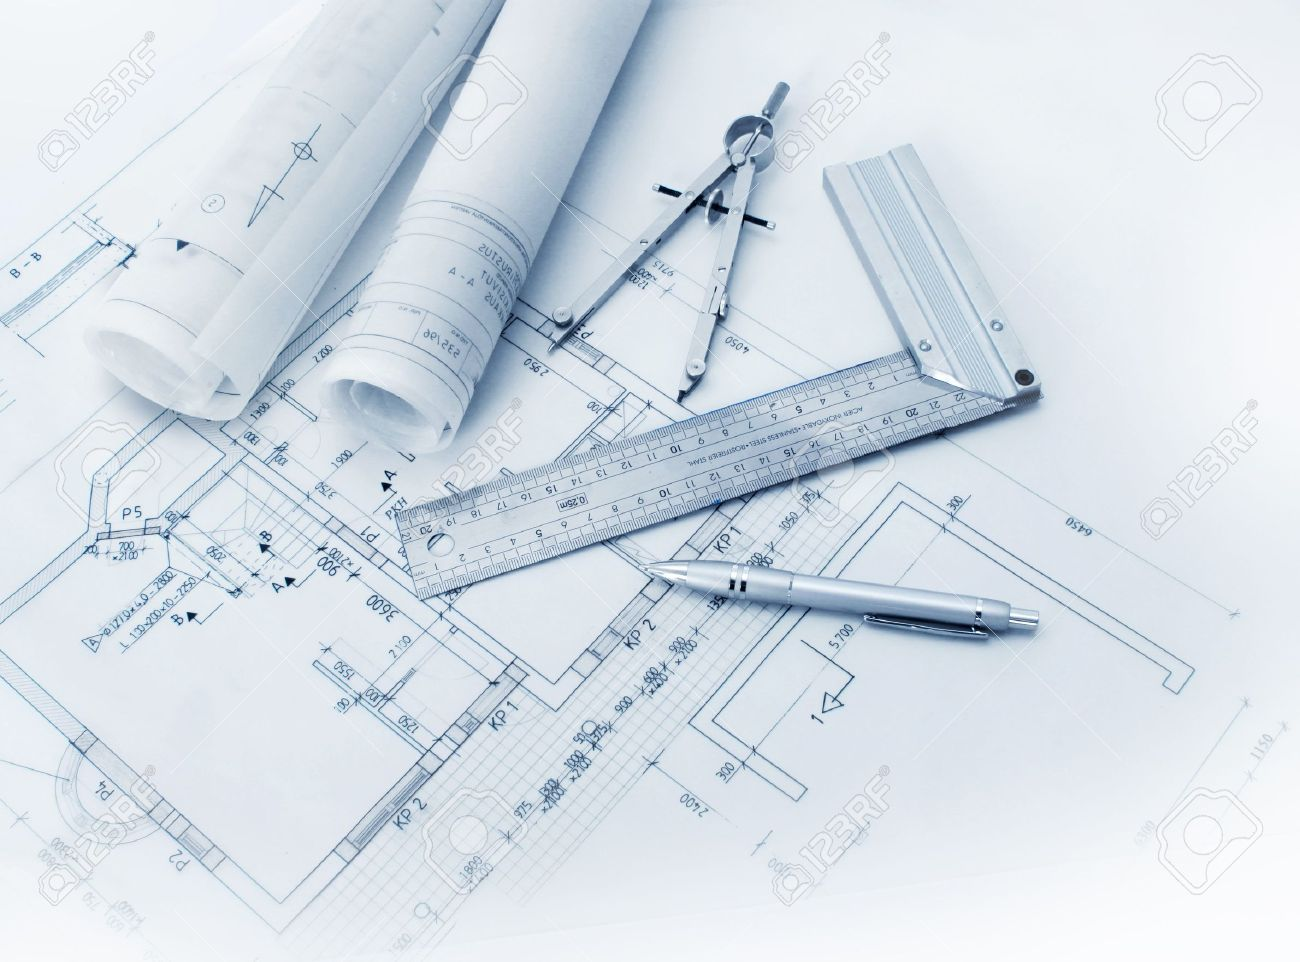 Construction plan tools and blueprint drawings stock photo picture construction plan tools and blueprint drawings stock photo 8952661 malvernweather